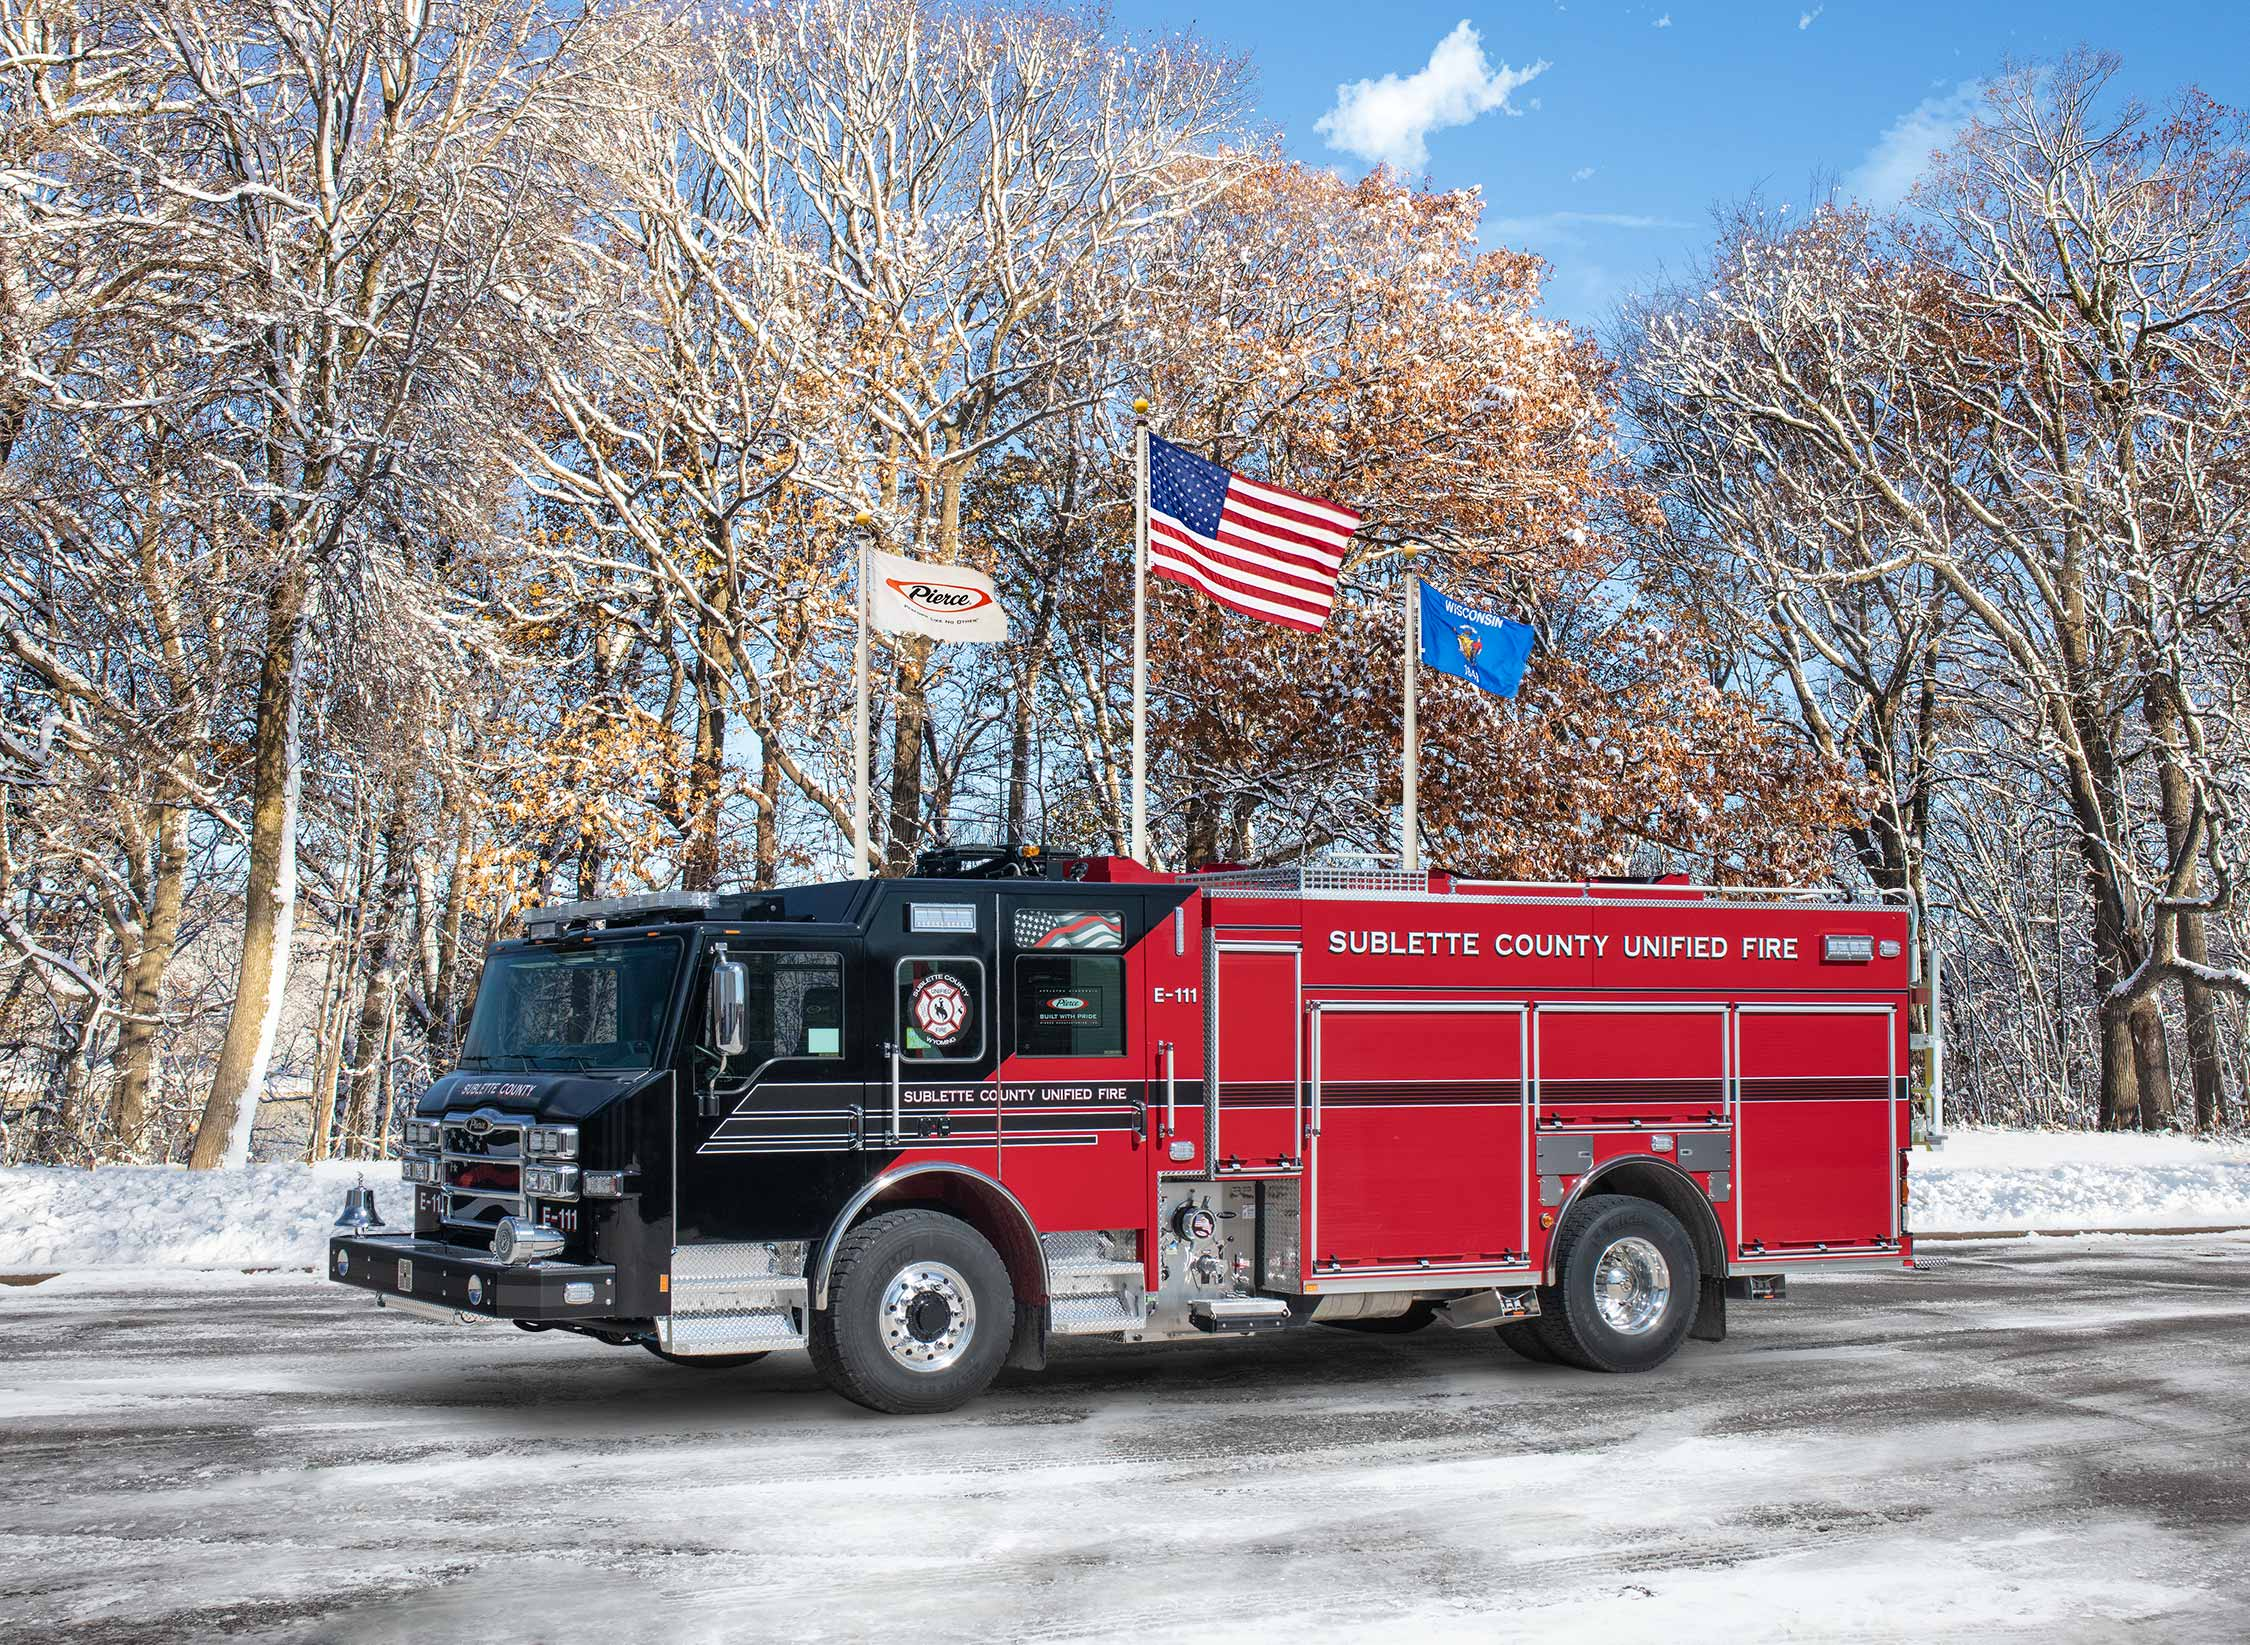 Sublette County Unified Fire - Pumper